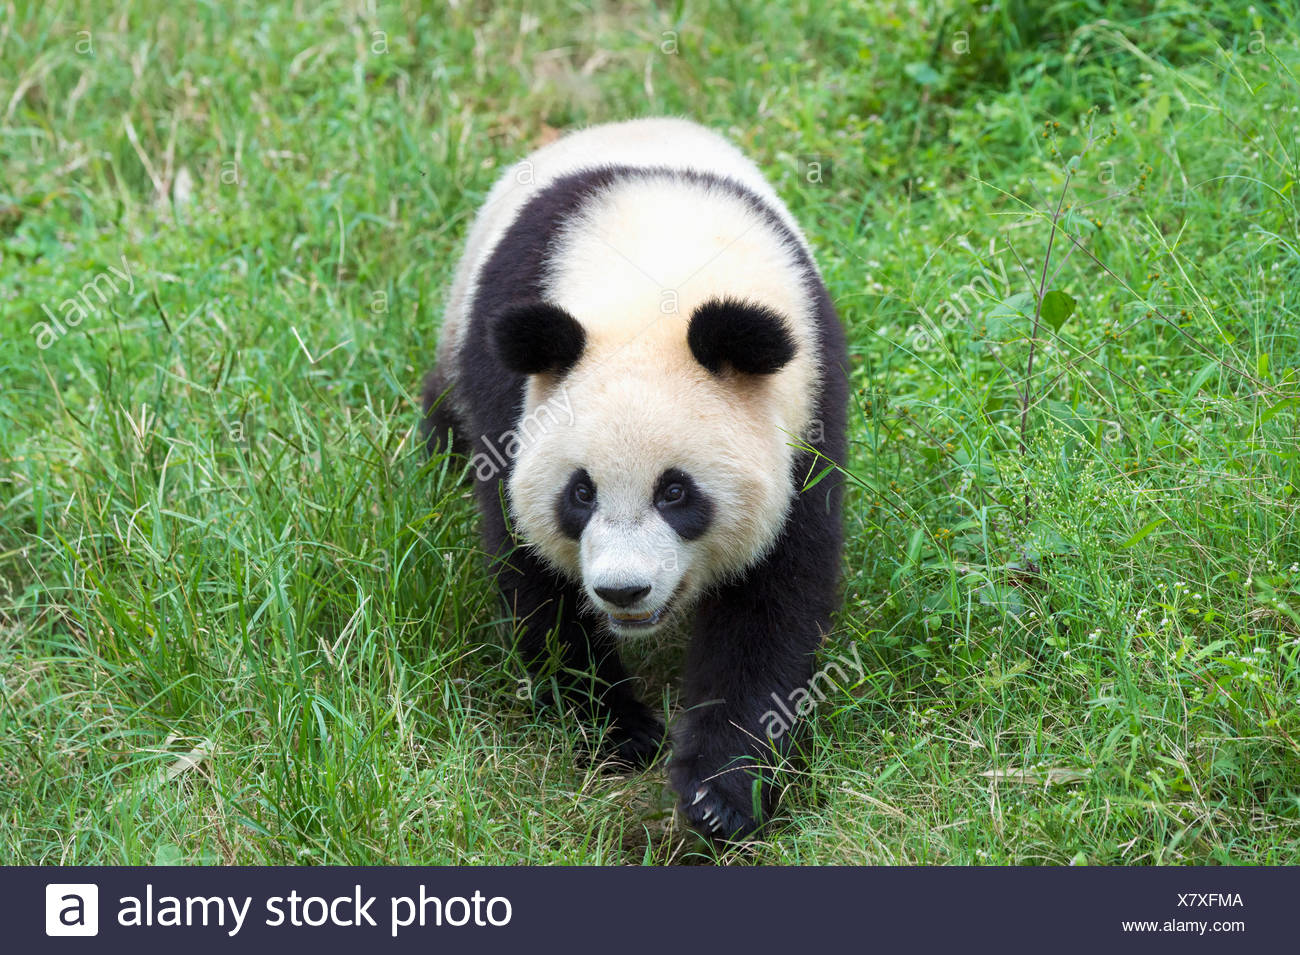 Giant Panda (Ailuropoda melanoleuca), China Conservation and Research Centre for the Giant Pandas, Chengdu, Sichuan, China - Stock Image